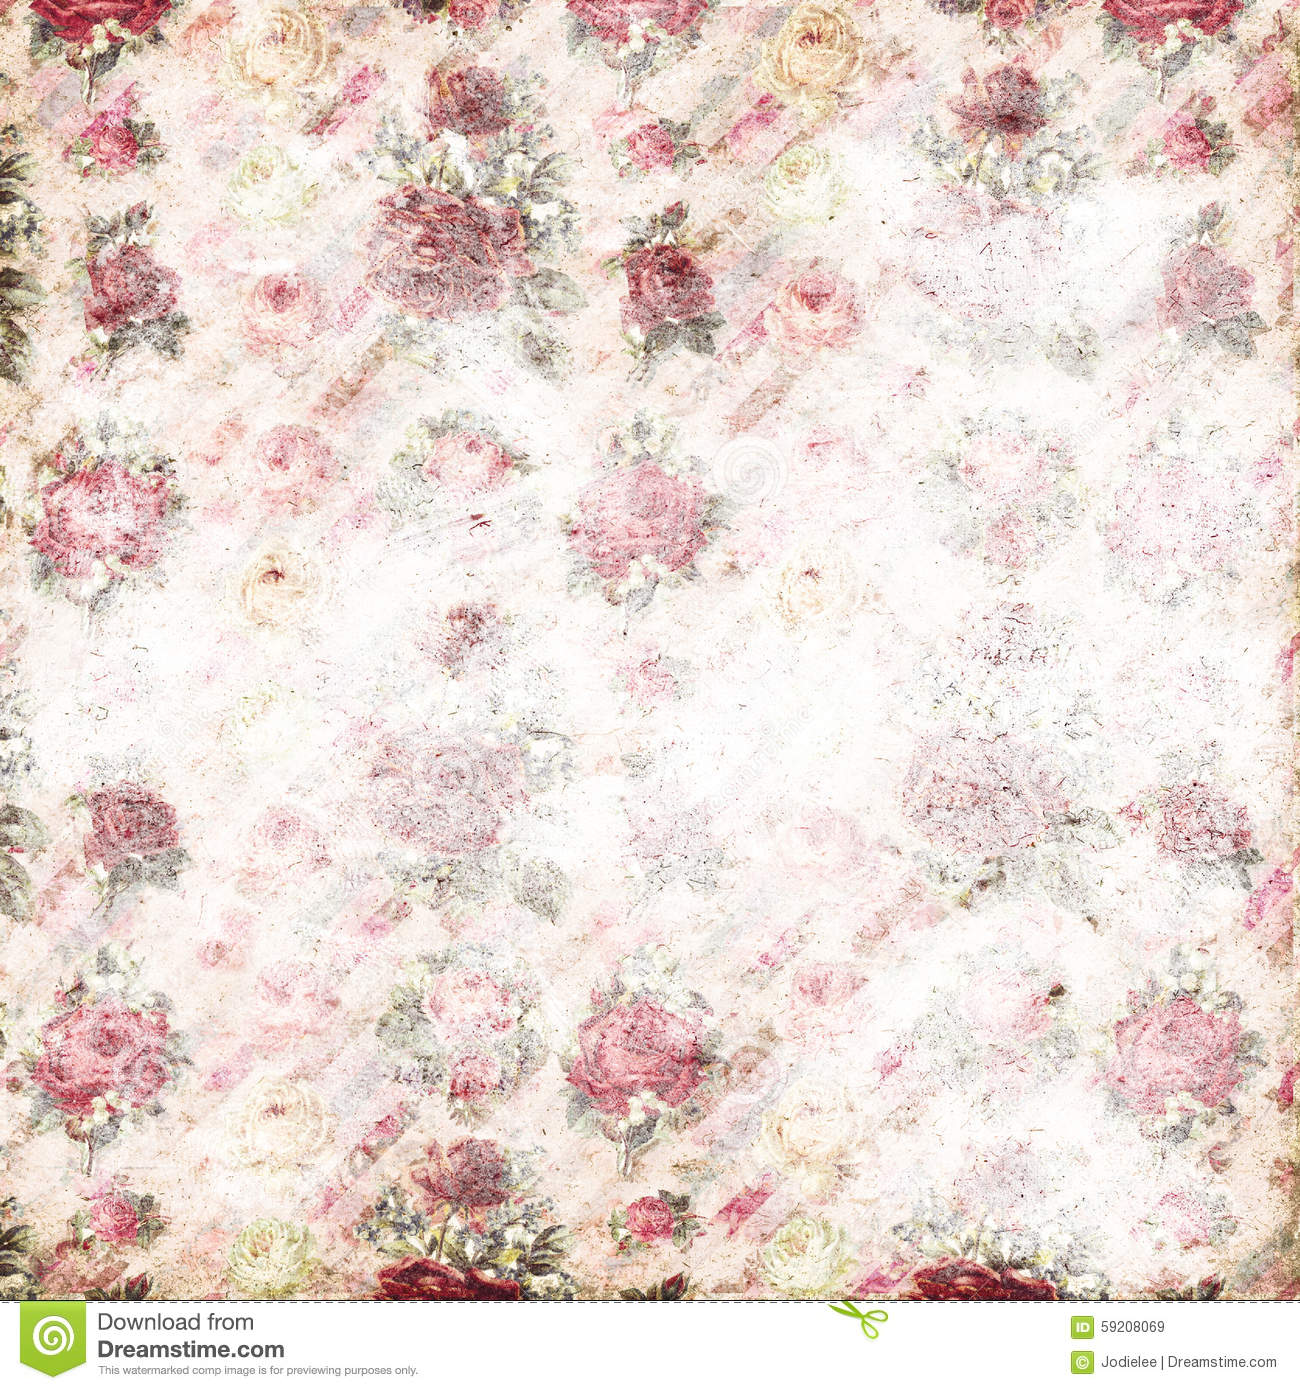 Antique pink and red shabby chic rose repeat pattern wallpaper stock photo - Papier peint shabby chic ...